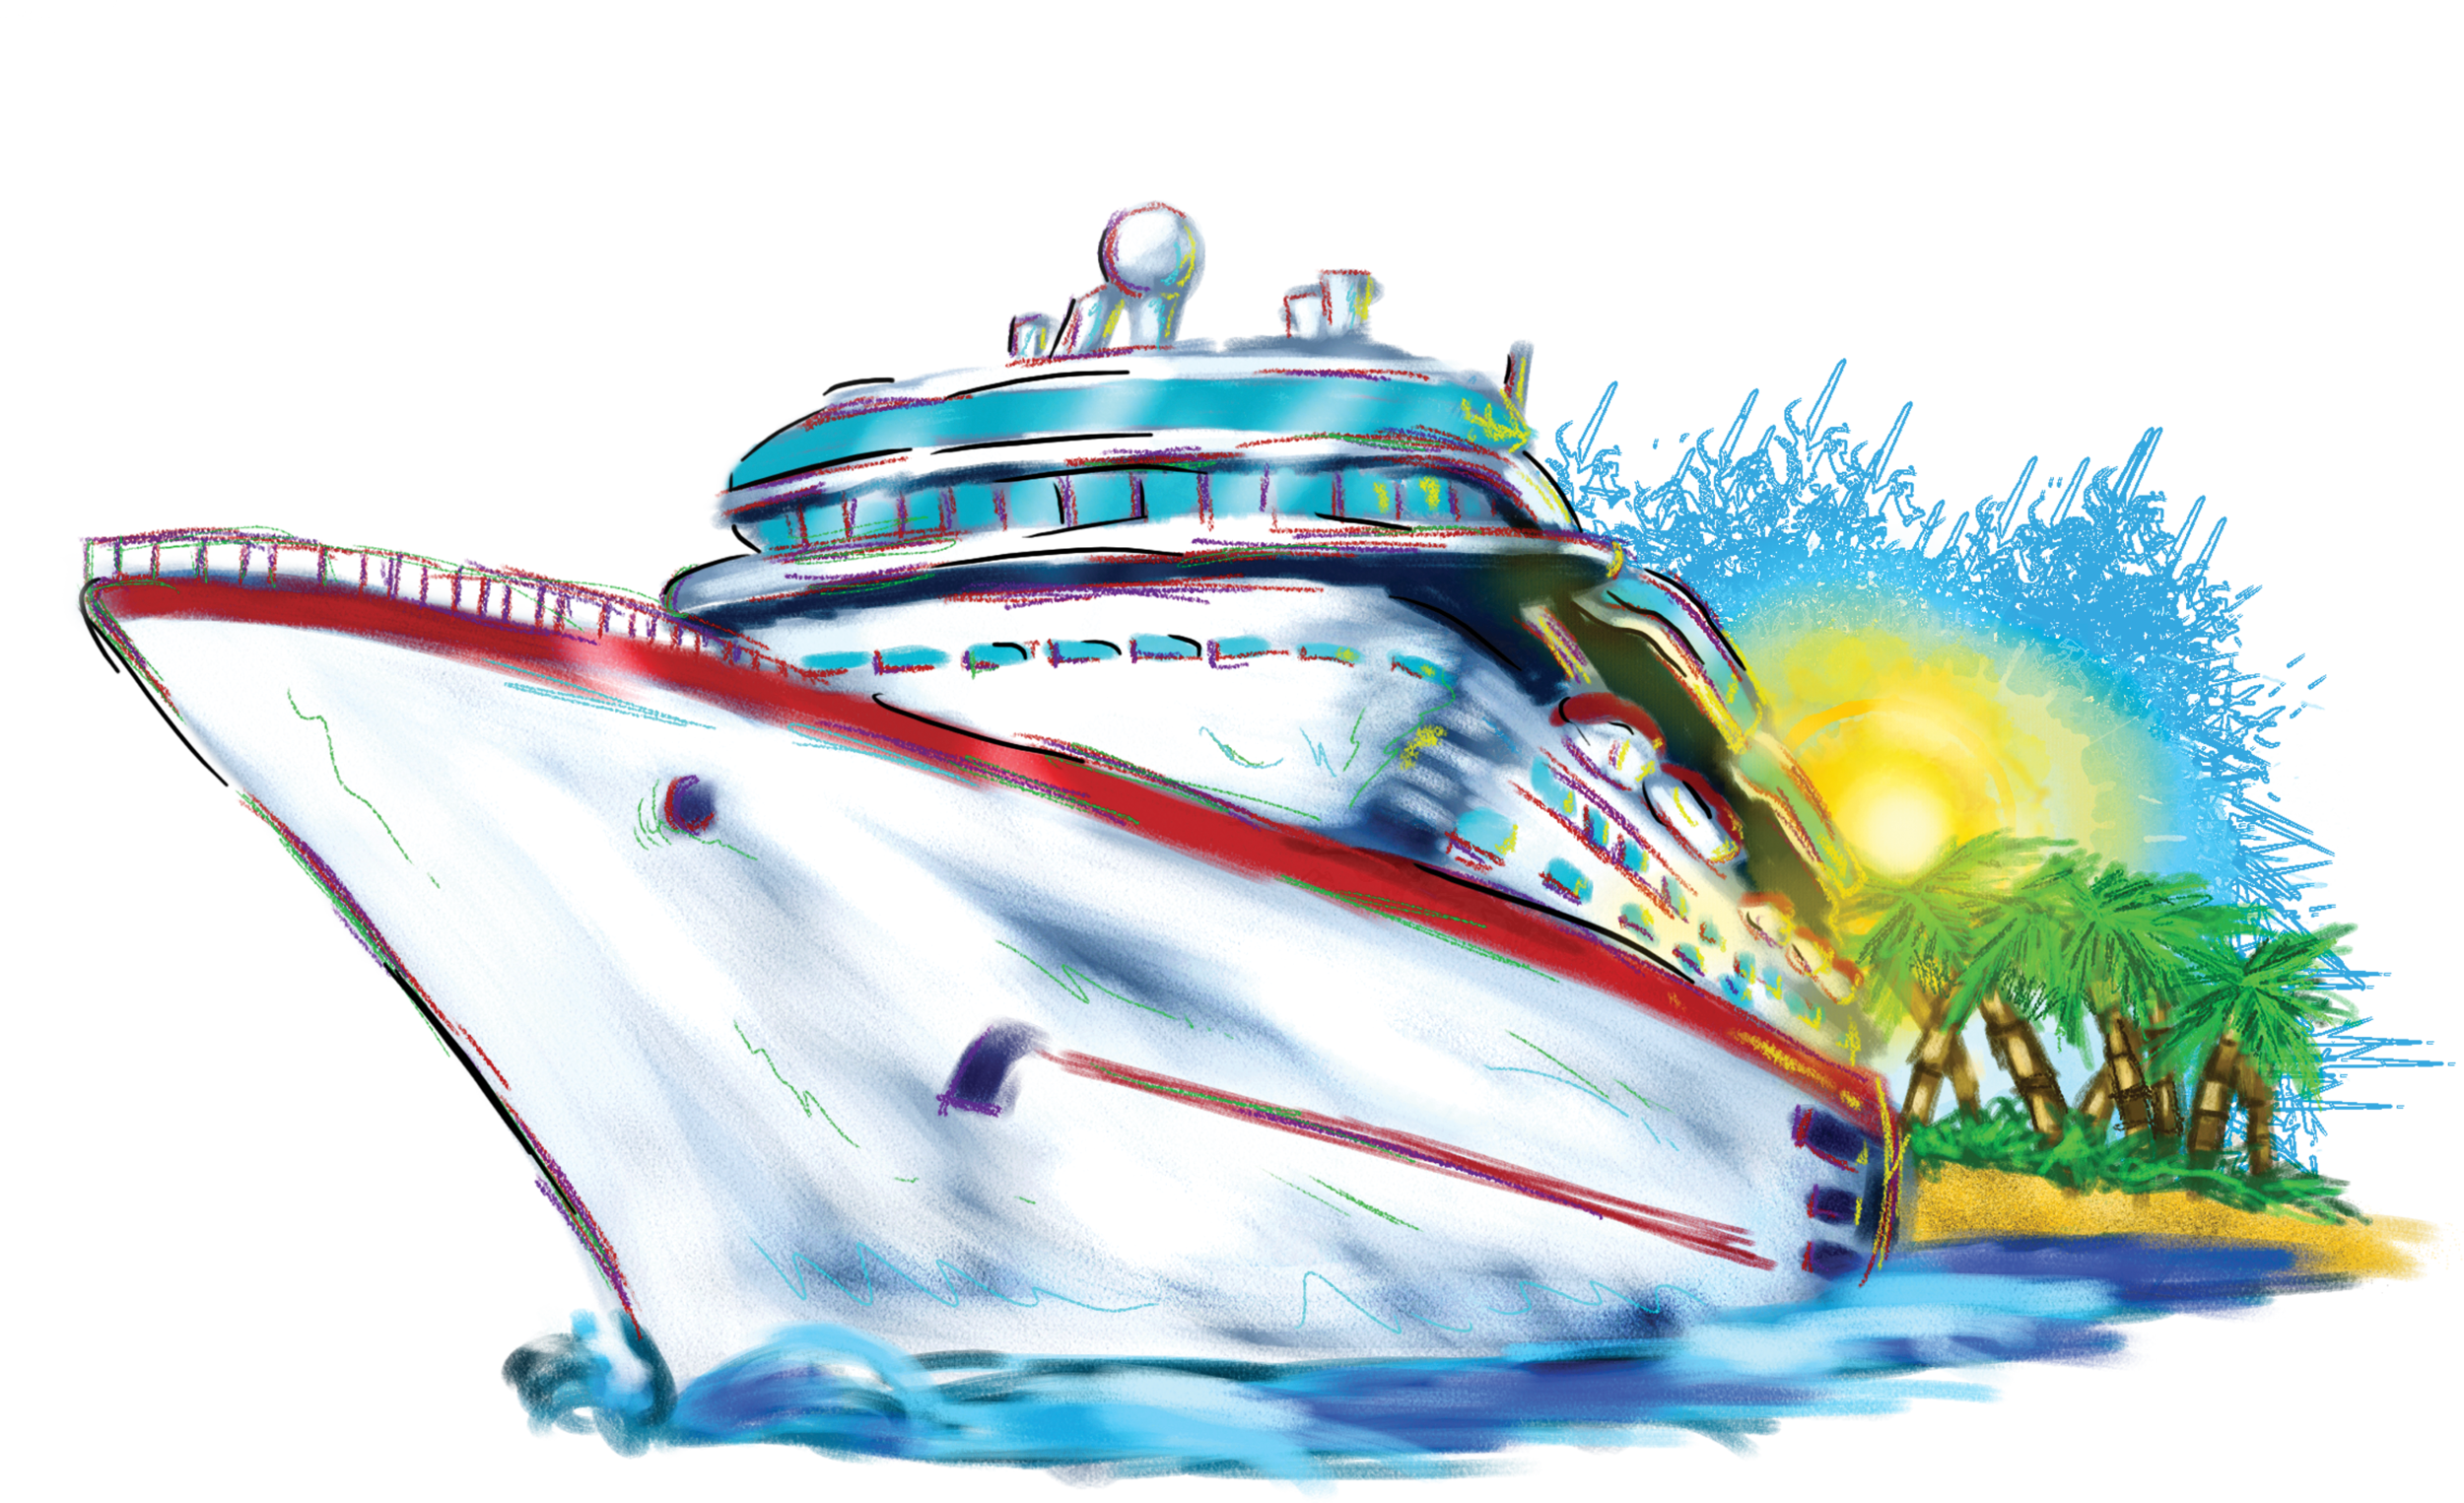 Cruise clip art free. Words clipart water